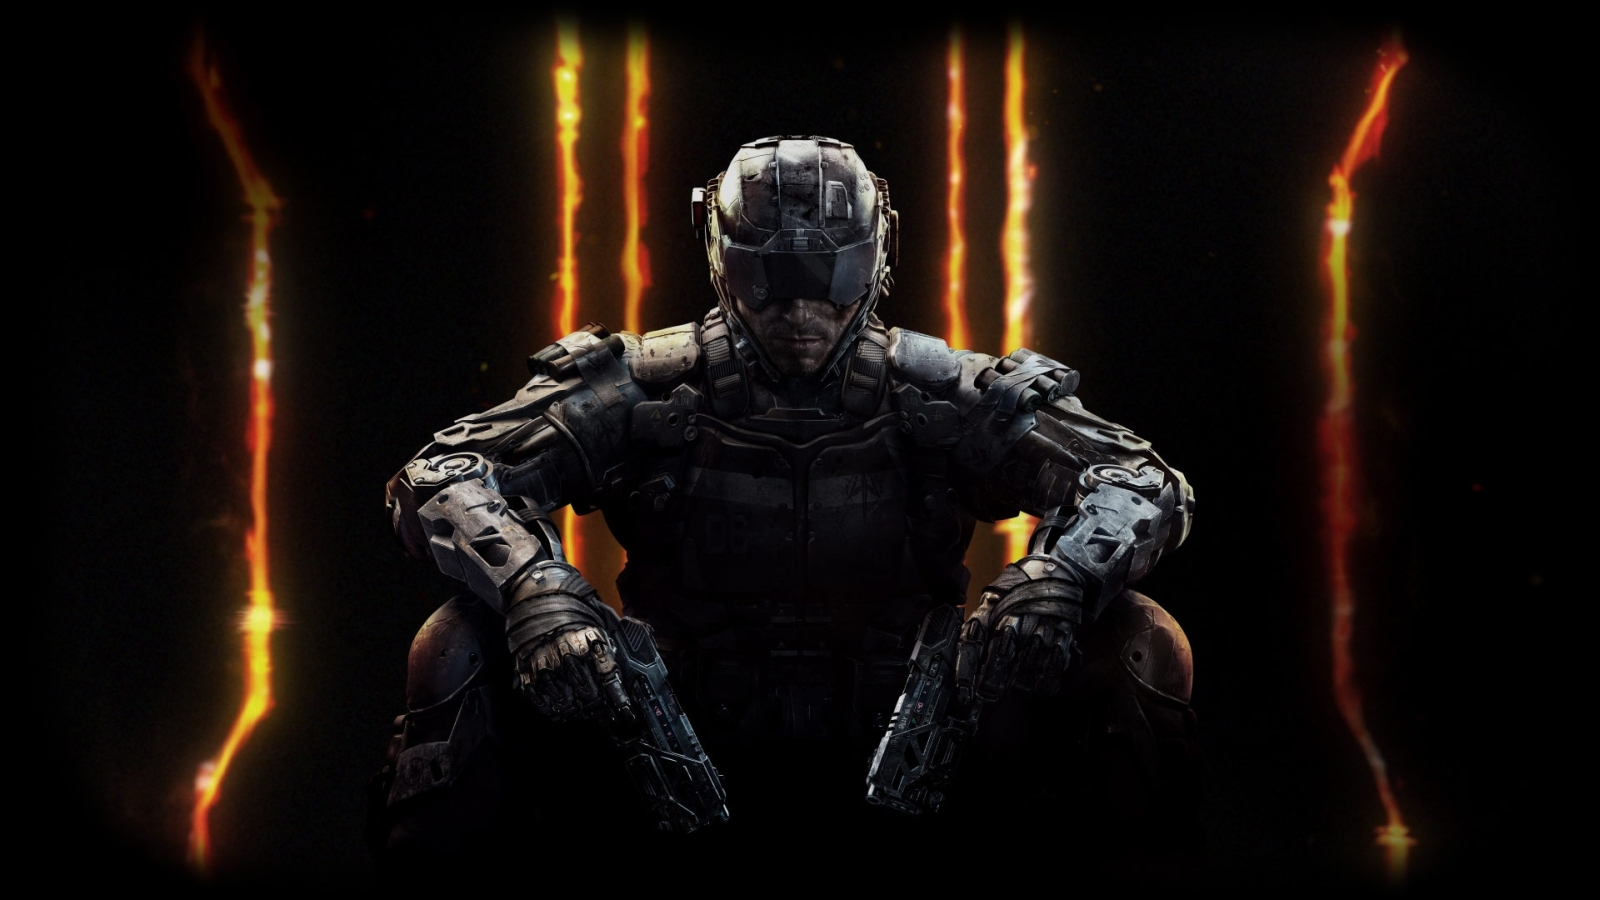 Call of Duty Black Ops 3 lead